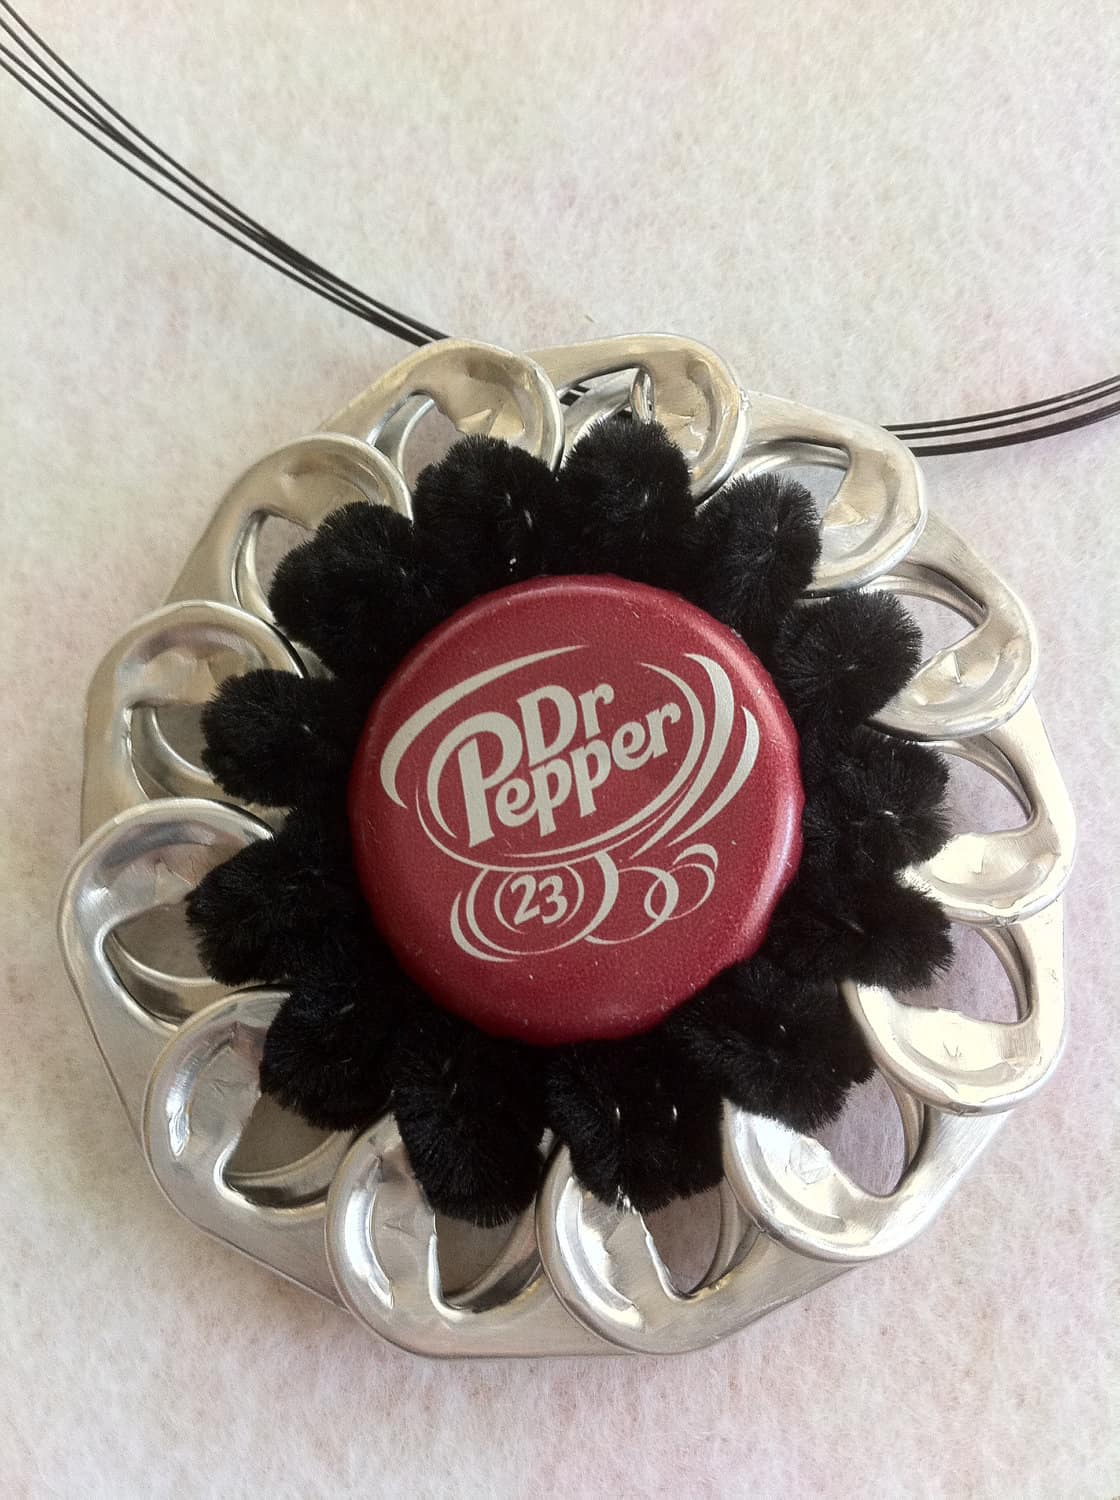 Soda tab and bottle cap pendants